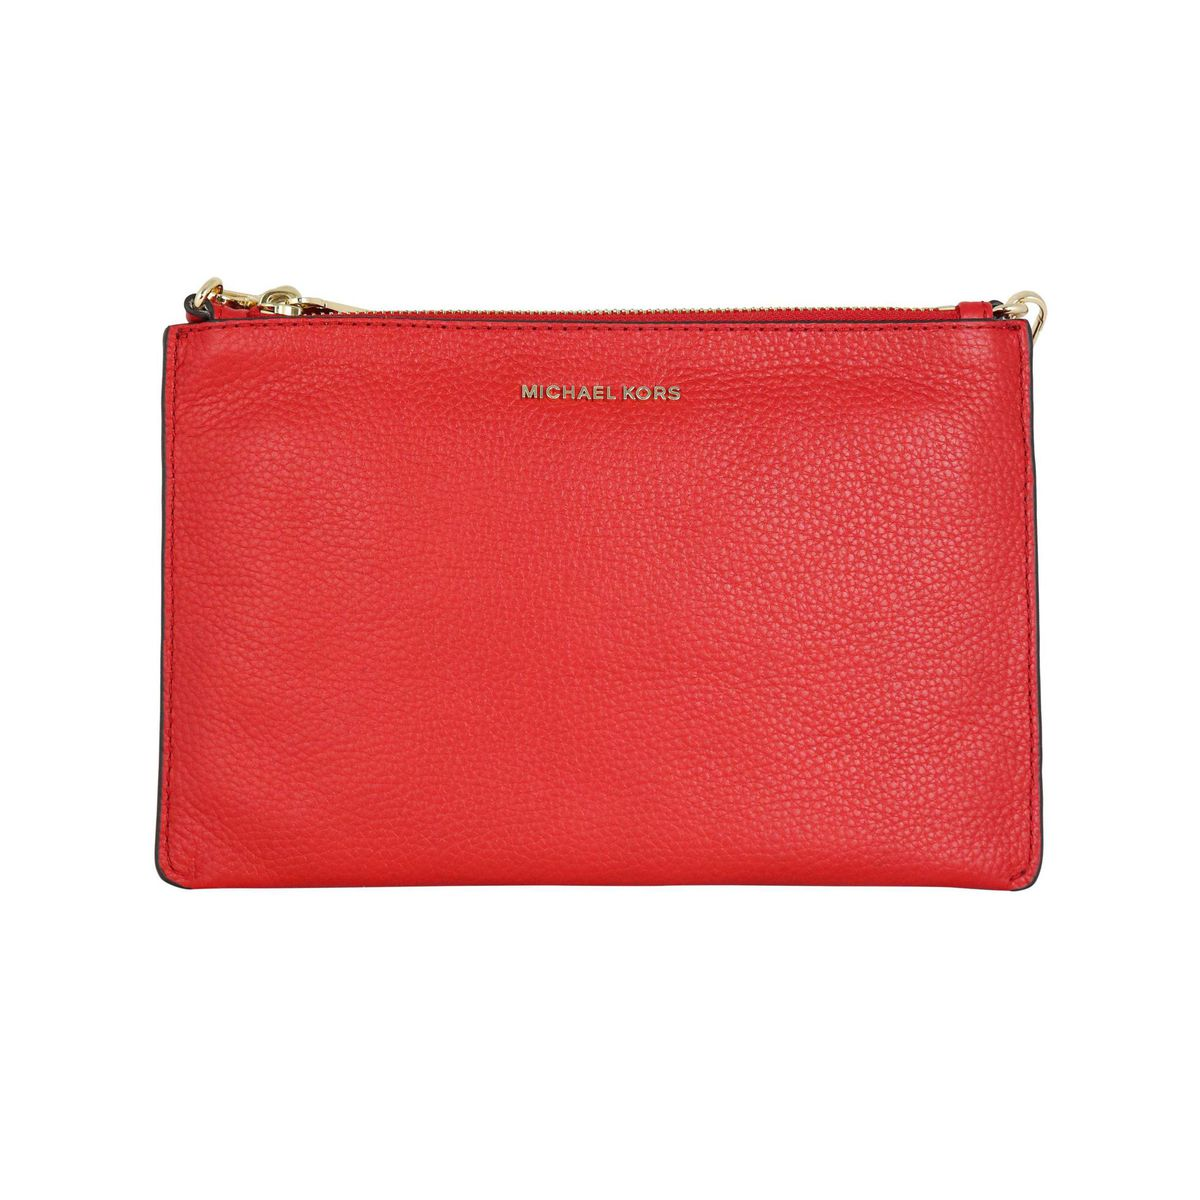 Large Crossbodies bag in textured leather Red Michael Kors